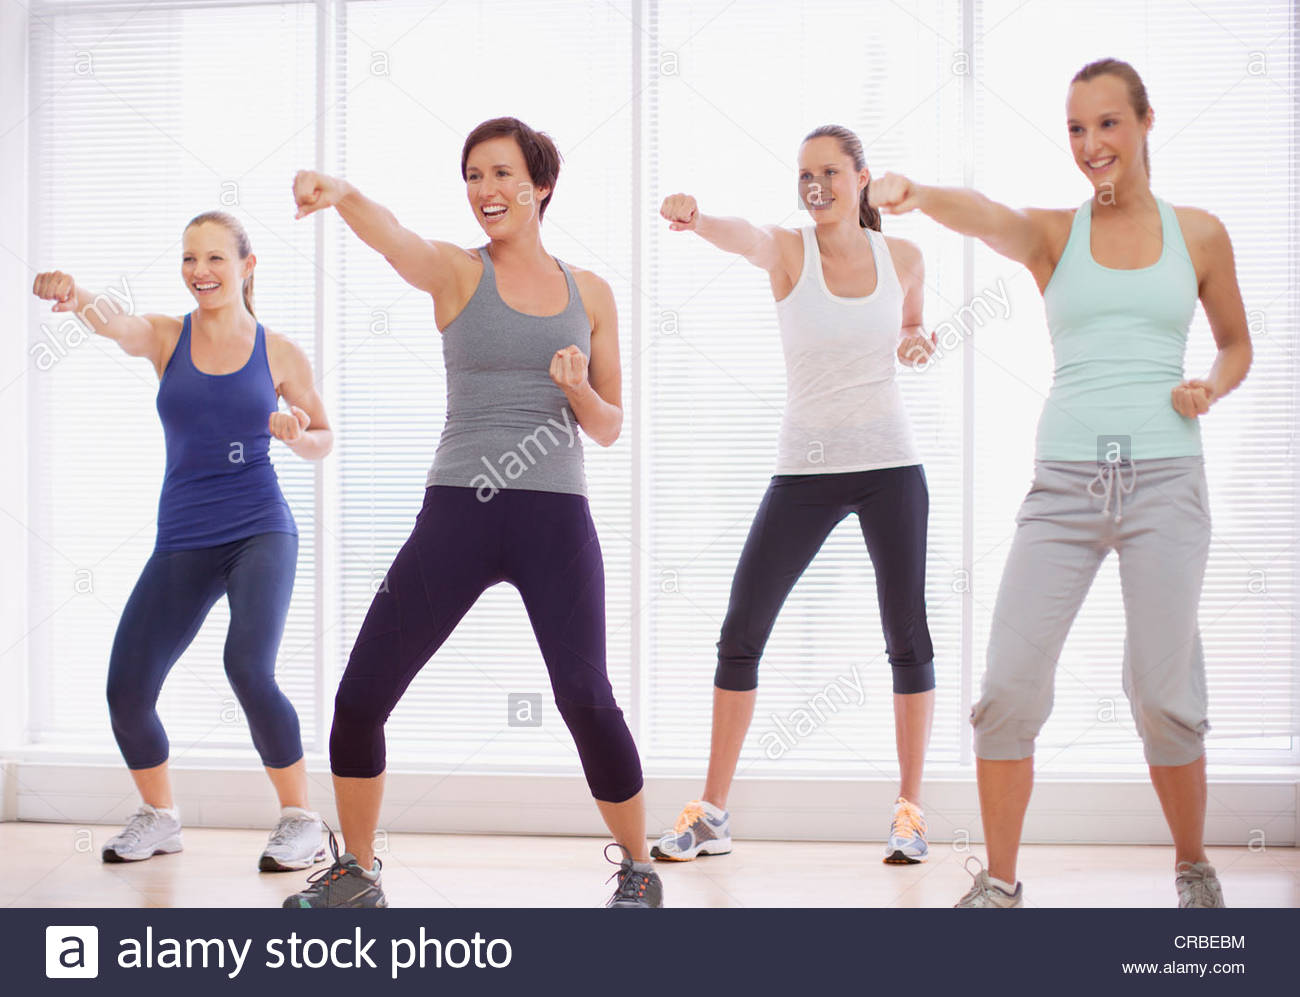 Smiling women in exercise class Photo Stock